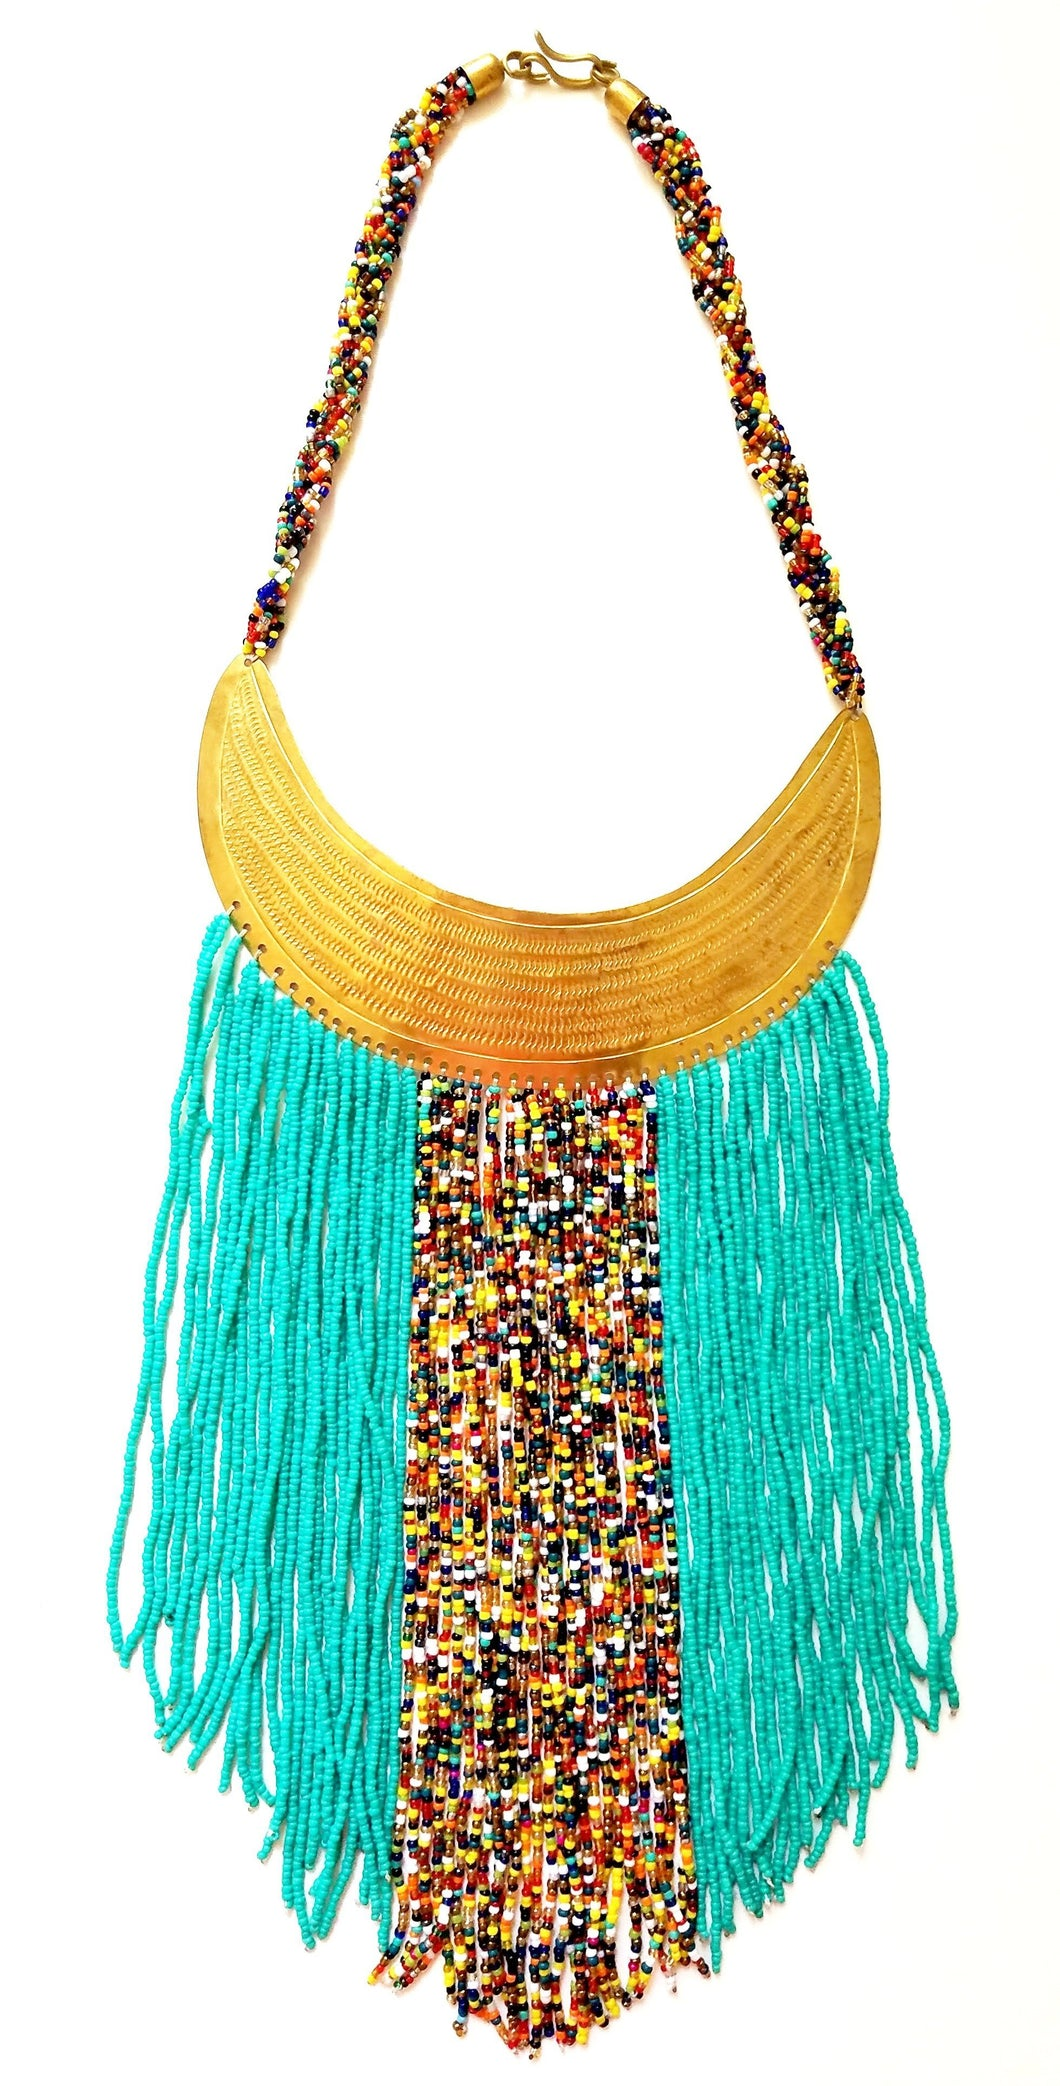 Pendo Fringe Necklace - The Afropolitan Shop